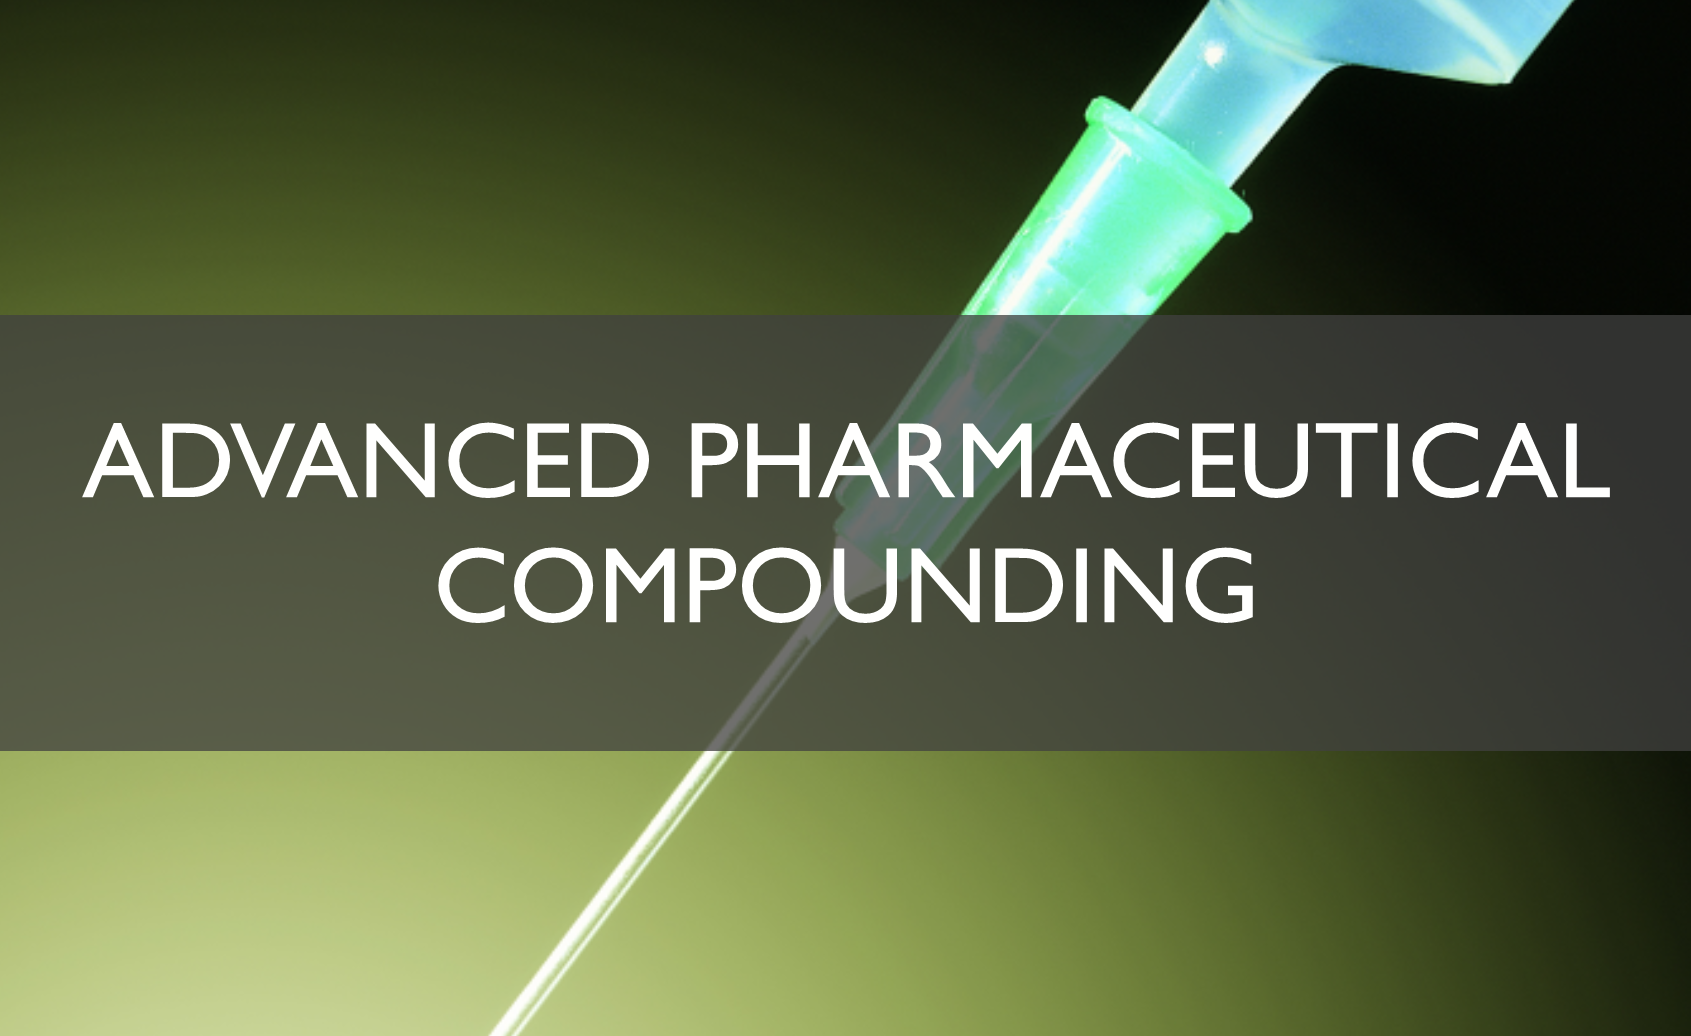 Advanced Pharmaceutical Compounding2